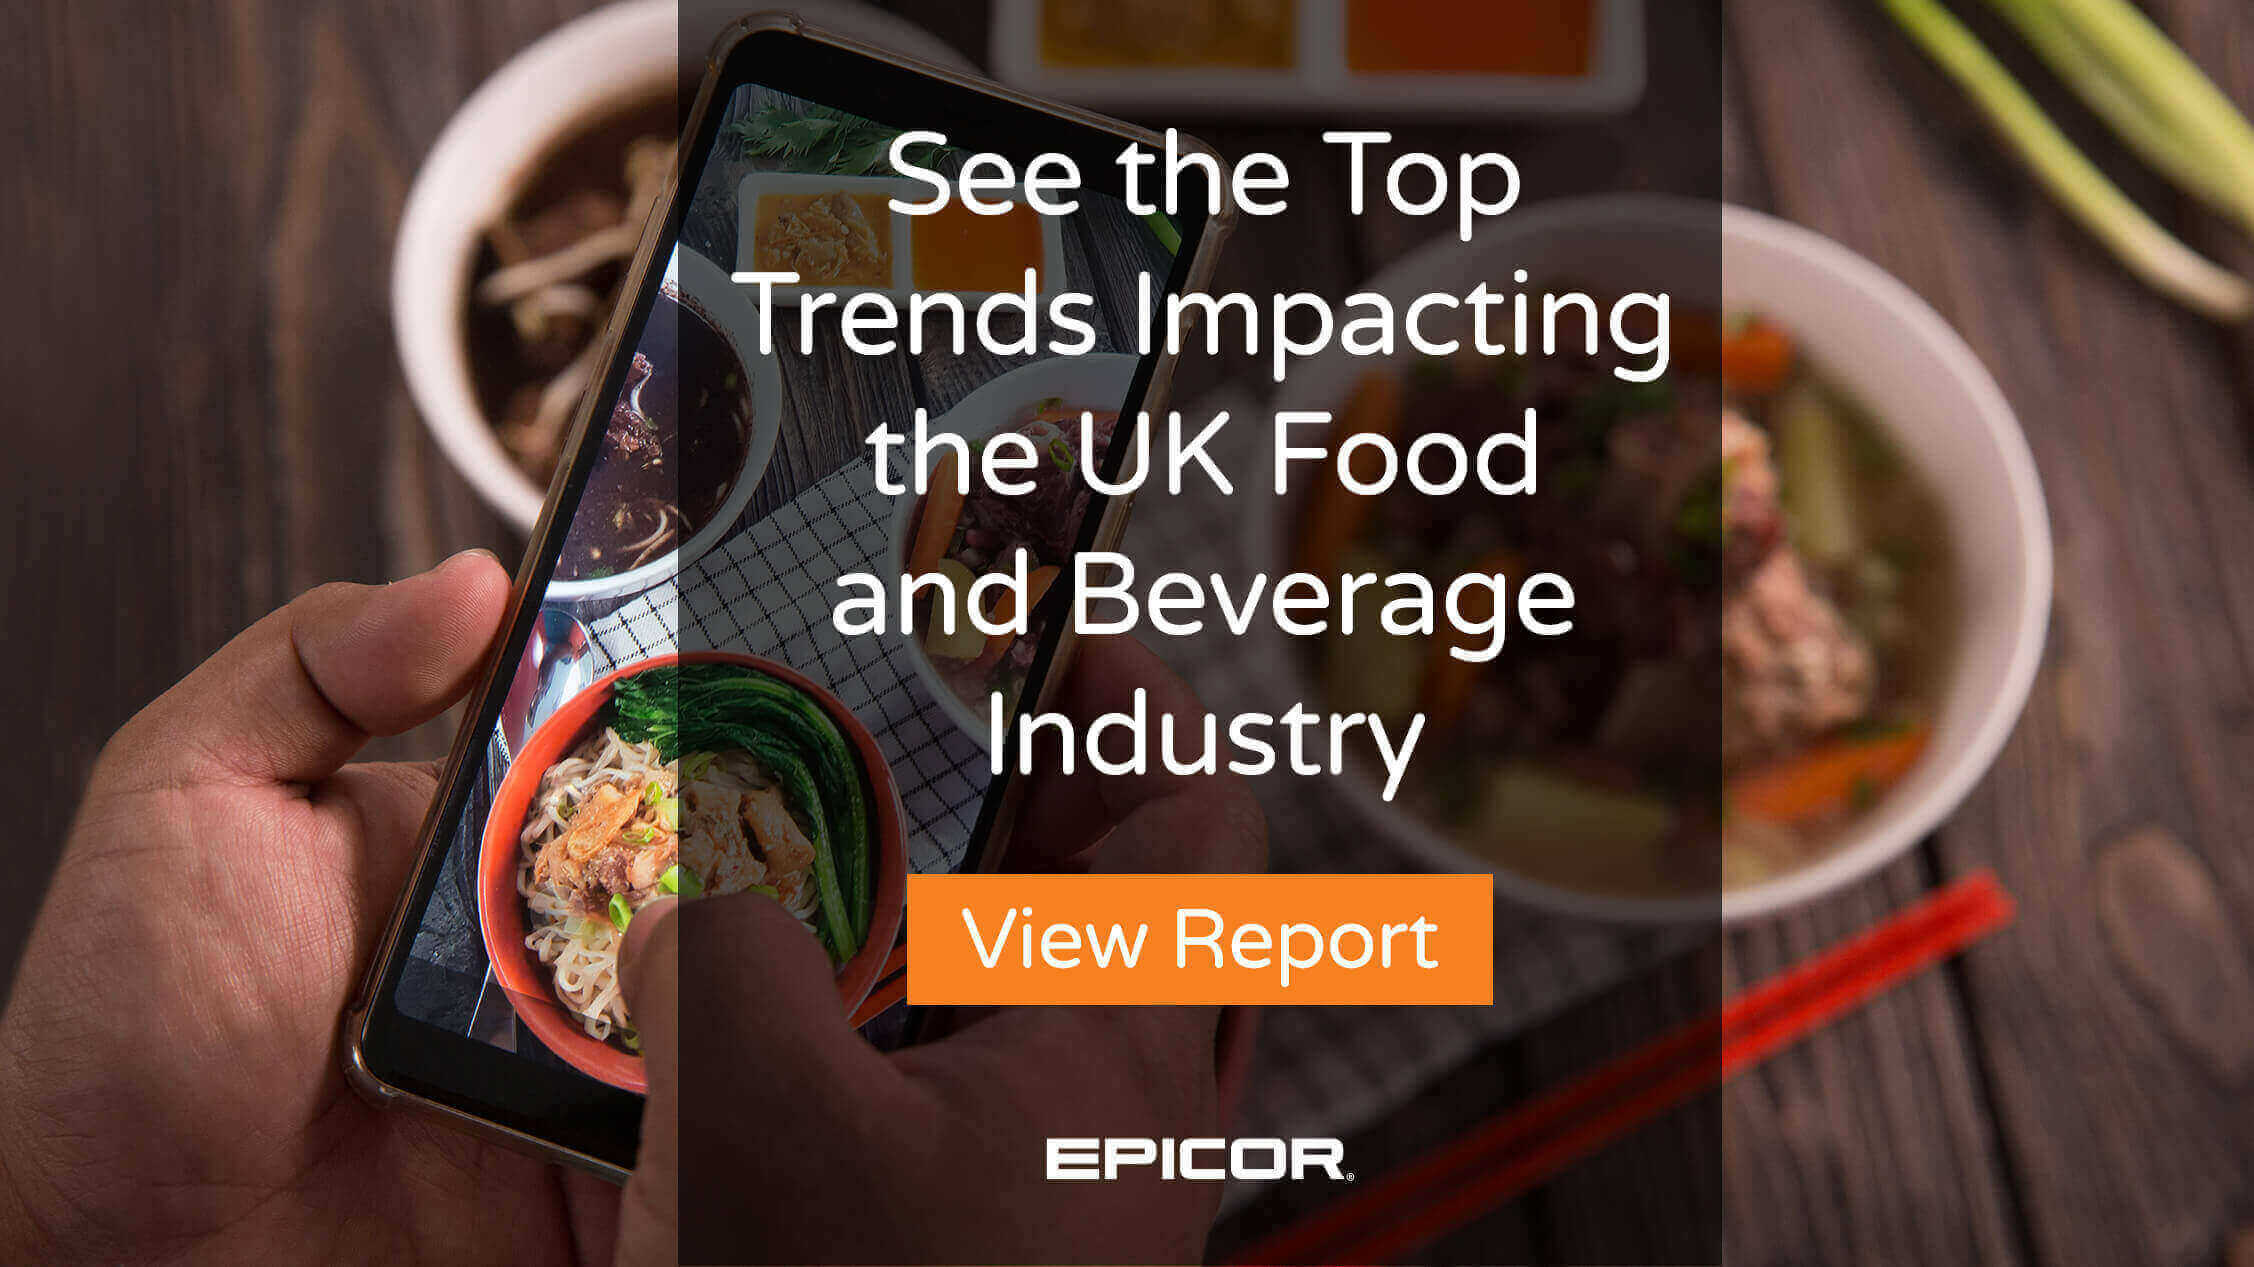 Helping the Food and Beverage Manufacturing Industry Thrive